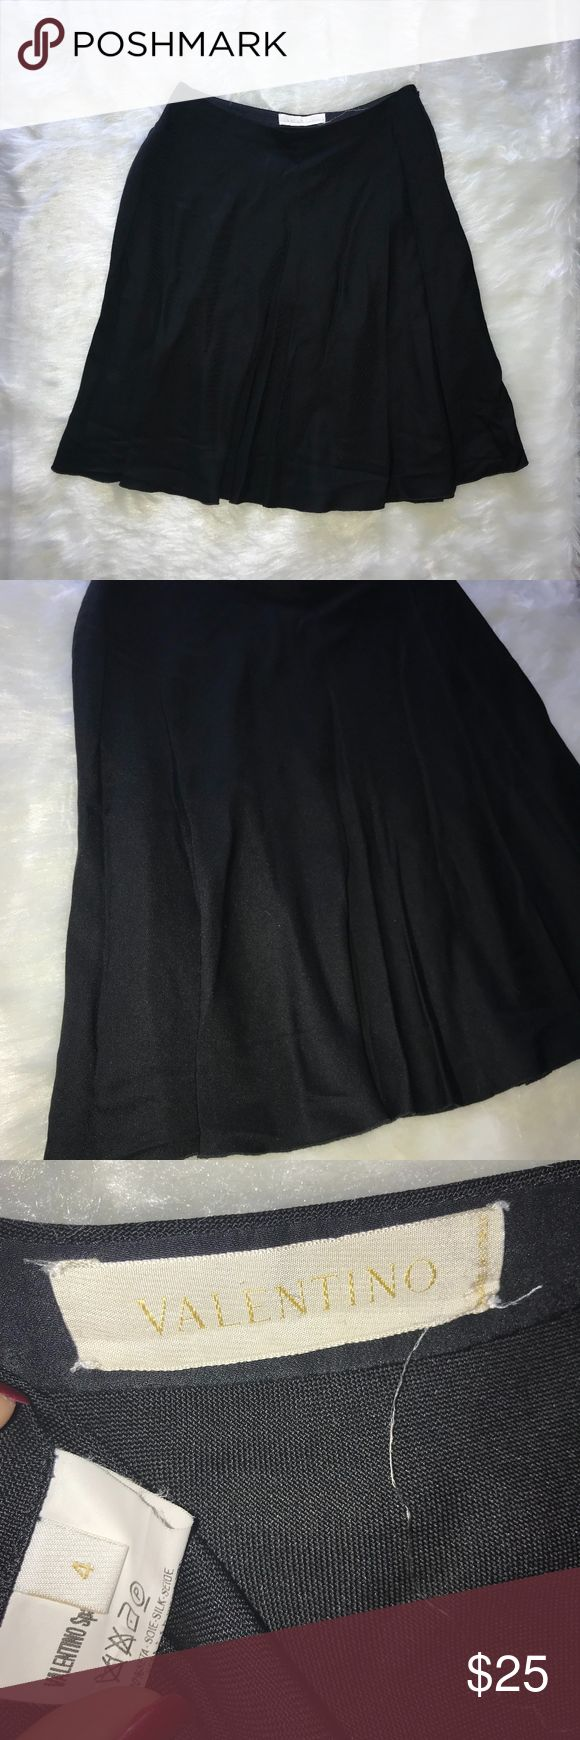 Valentino Spa EUC Black Flare Mini Skirt Size 4 Valentino Spa Excellent Used Condition  Mini Flare Skirt Black Size 4 Valentino Skirts Mini